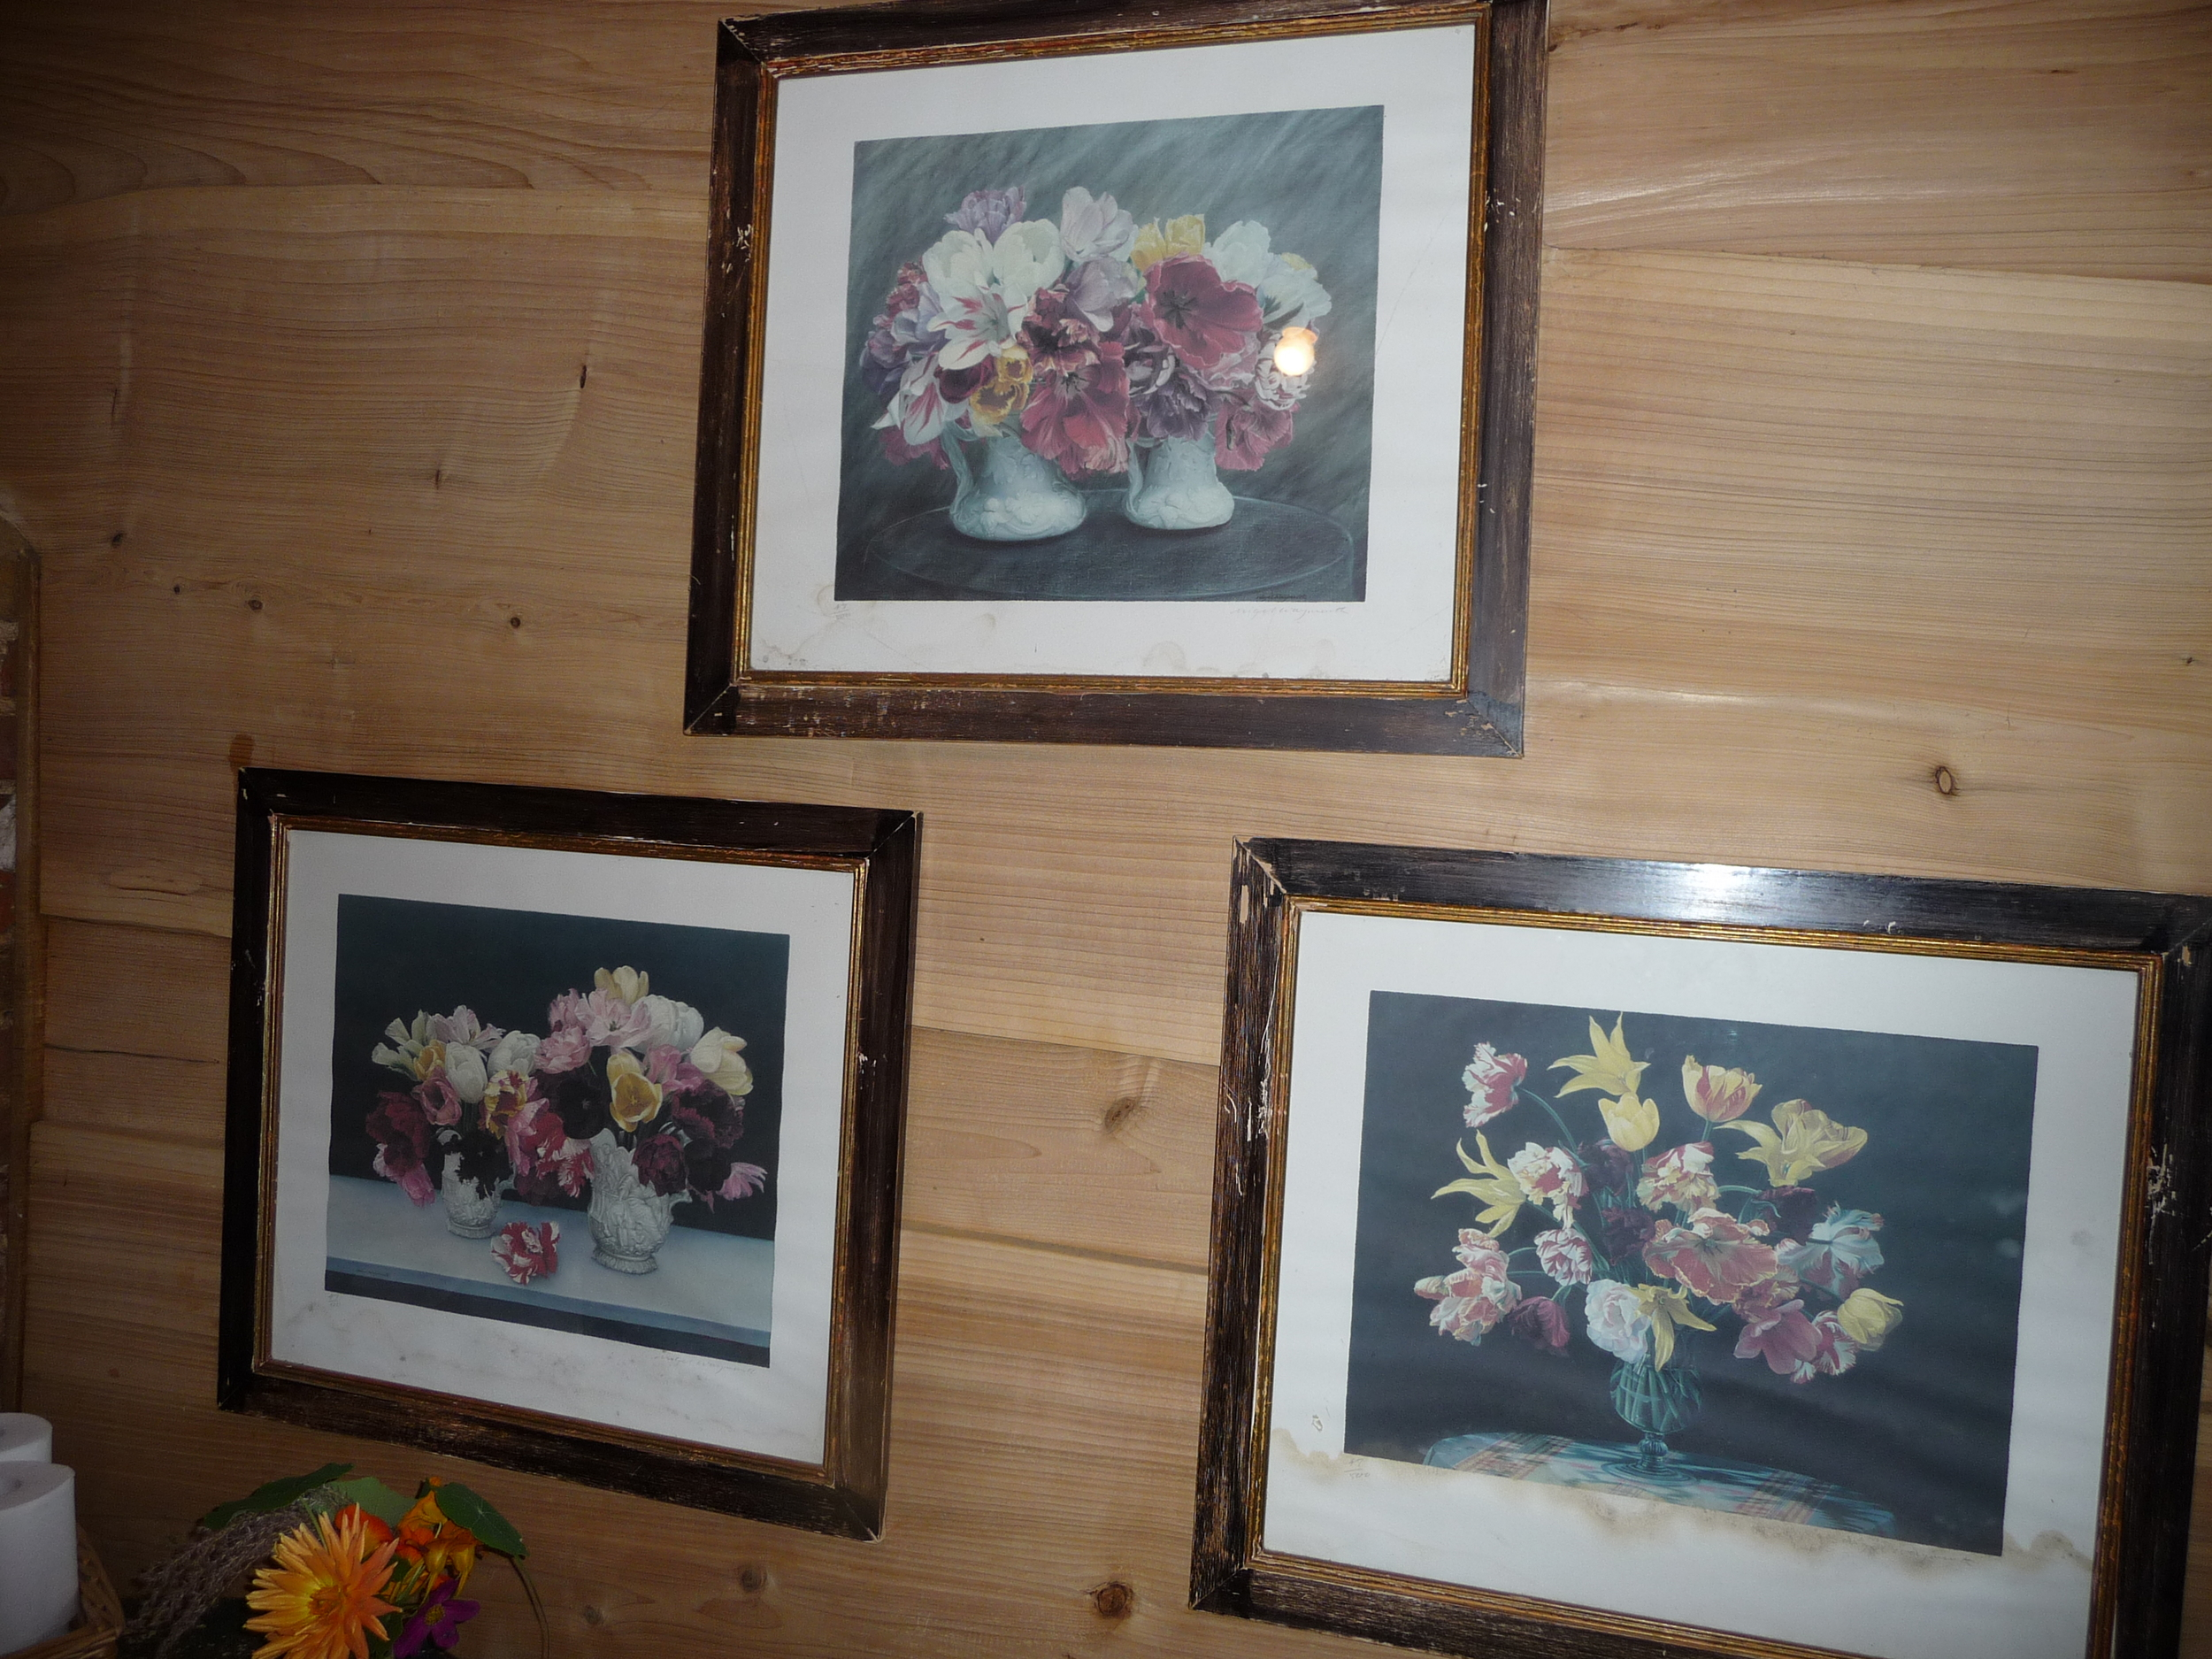 These gems of vintage framed prints are actually in one of the loos!!! I so want to have them in my house!!!!